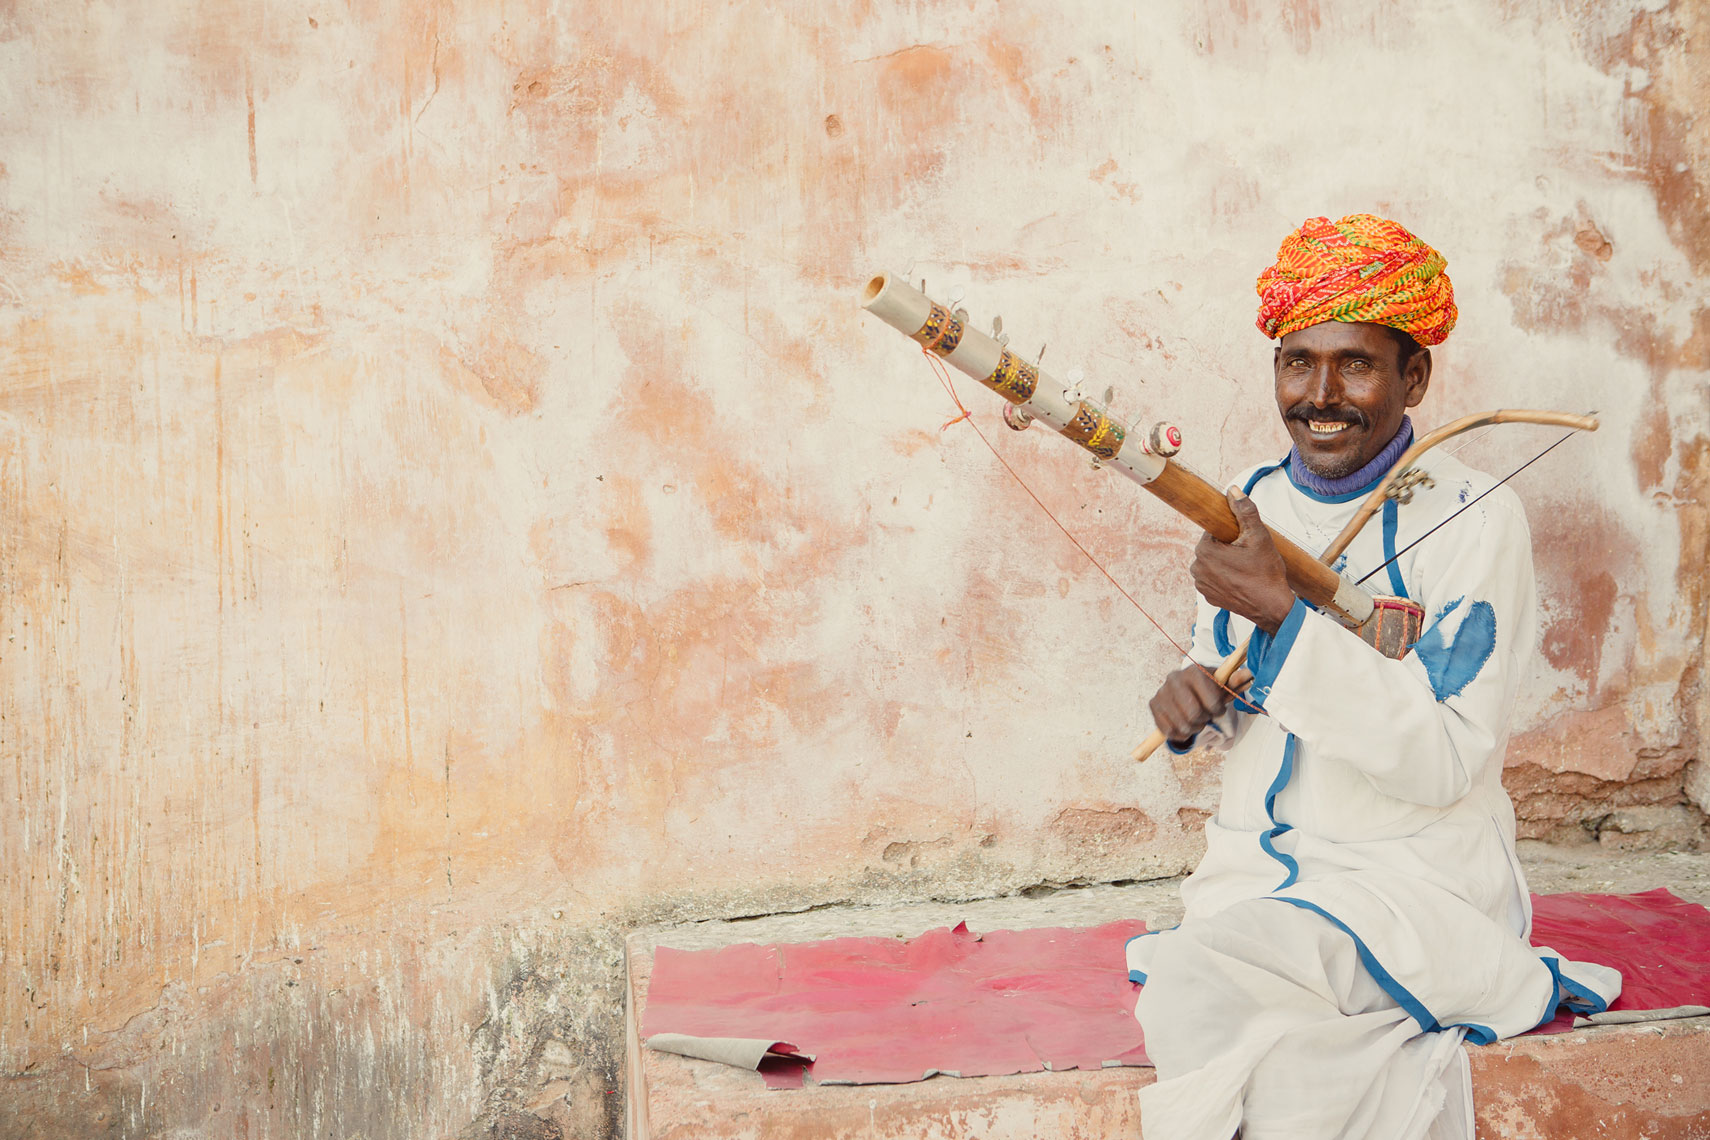 deepi-ahluwalia-india-jaipur-man-instrument